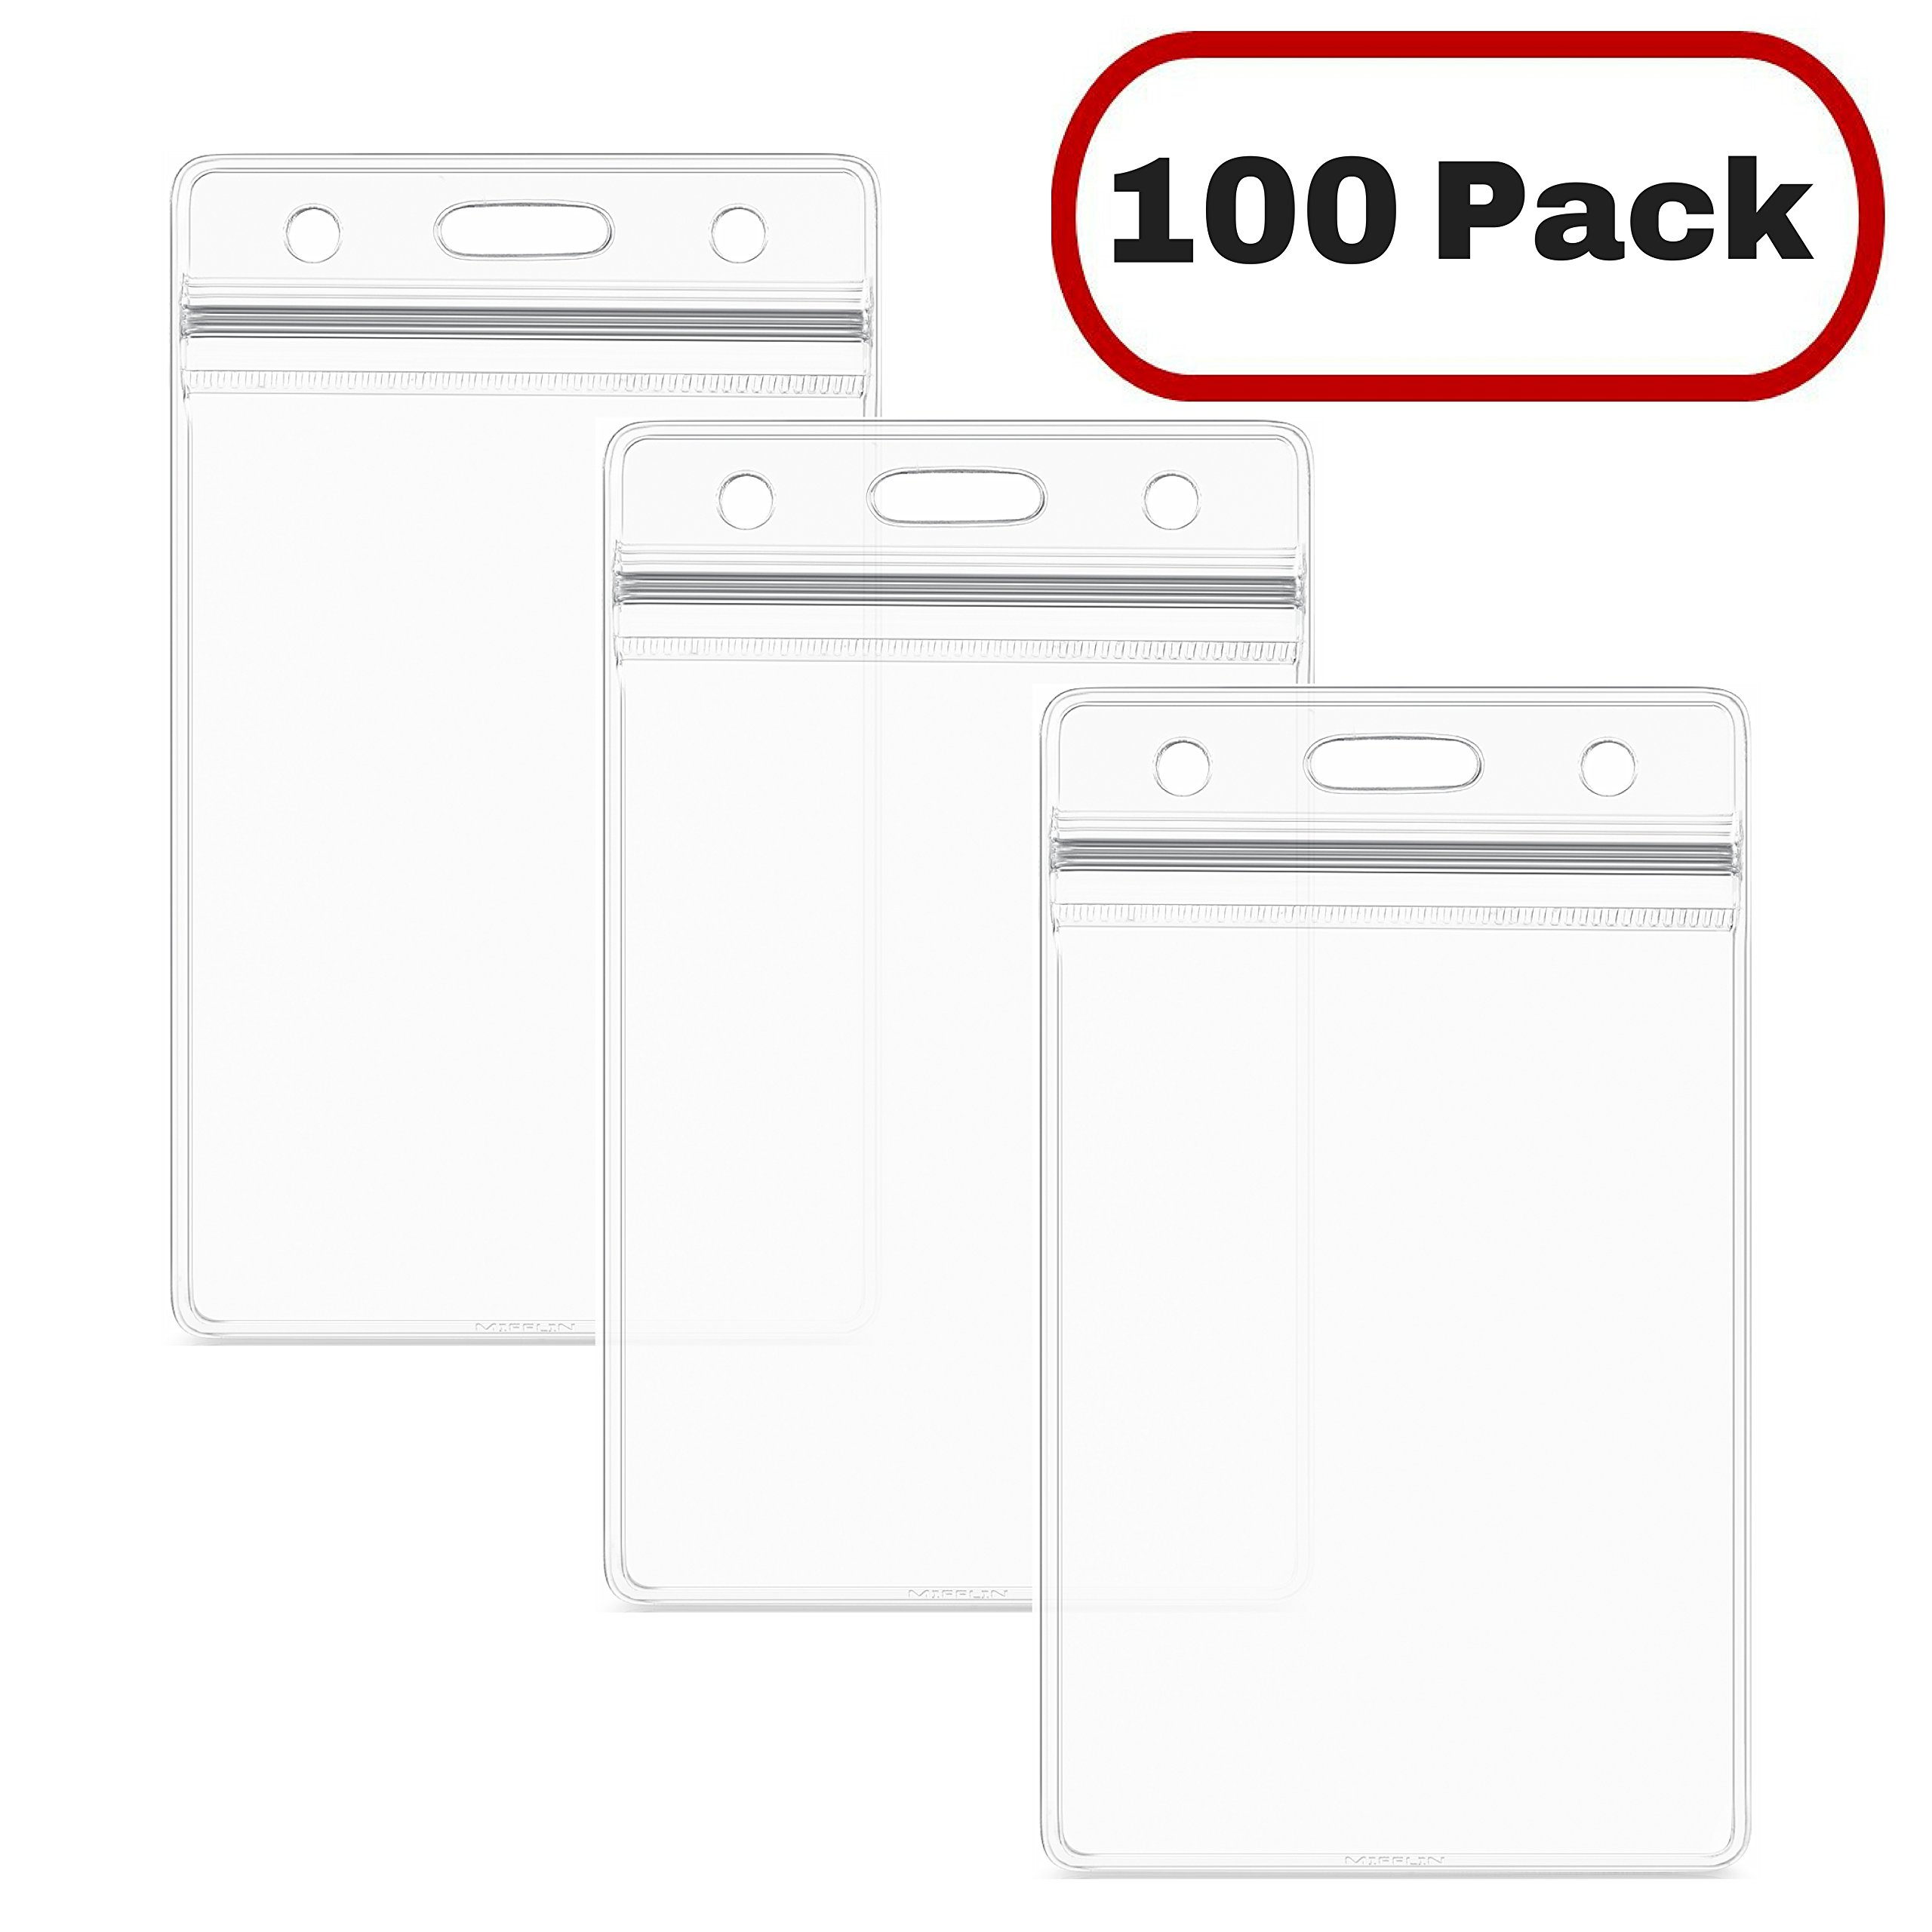 MIFFLIN ID Card Holder, Clear Plastic Badge Holder, Resealable, Waterproof, Vertical Style, 100 Pack